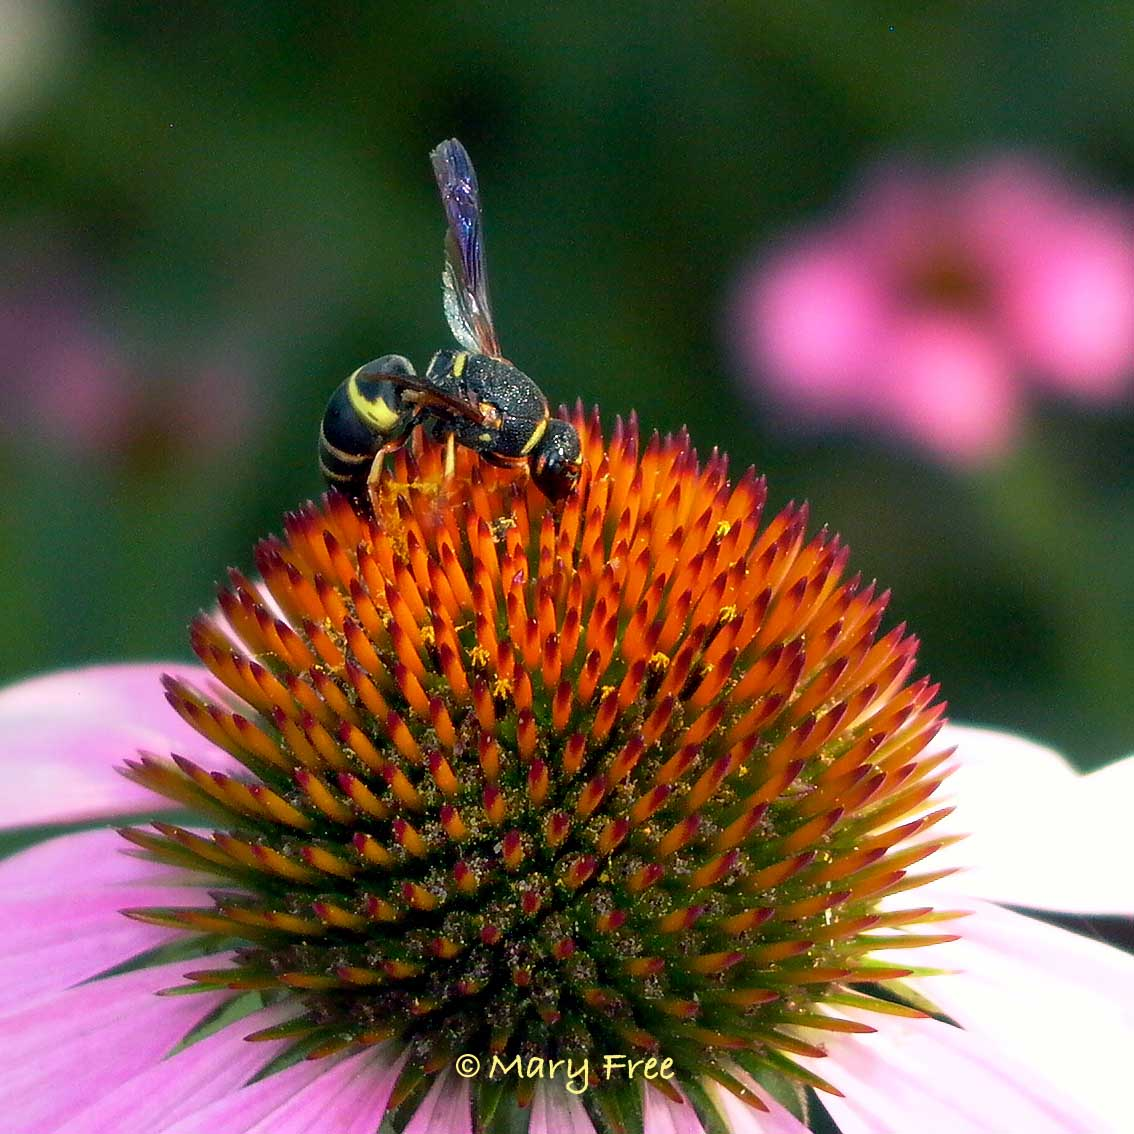 On the Echinacea – What's that Insect? | Master Gardeners ...